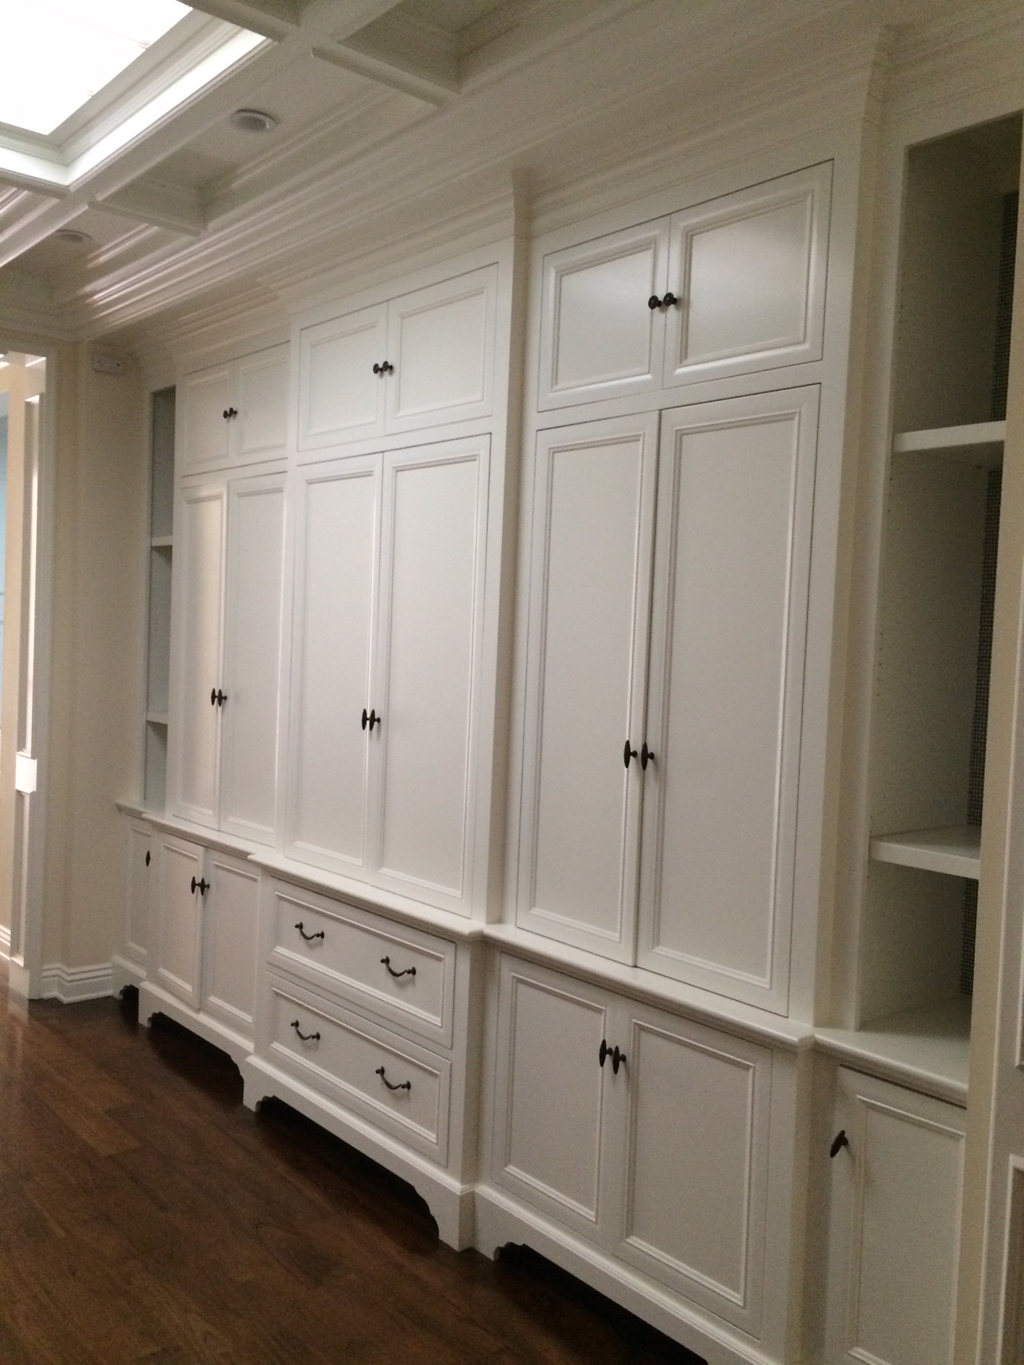 Custom linen closet with custom leg detail and beam & crown at ceiling